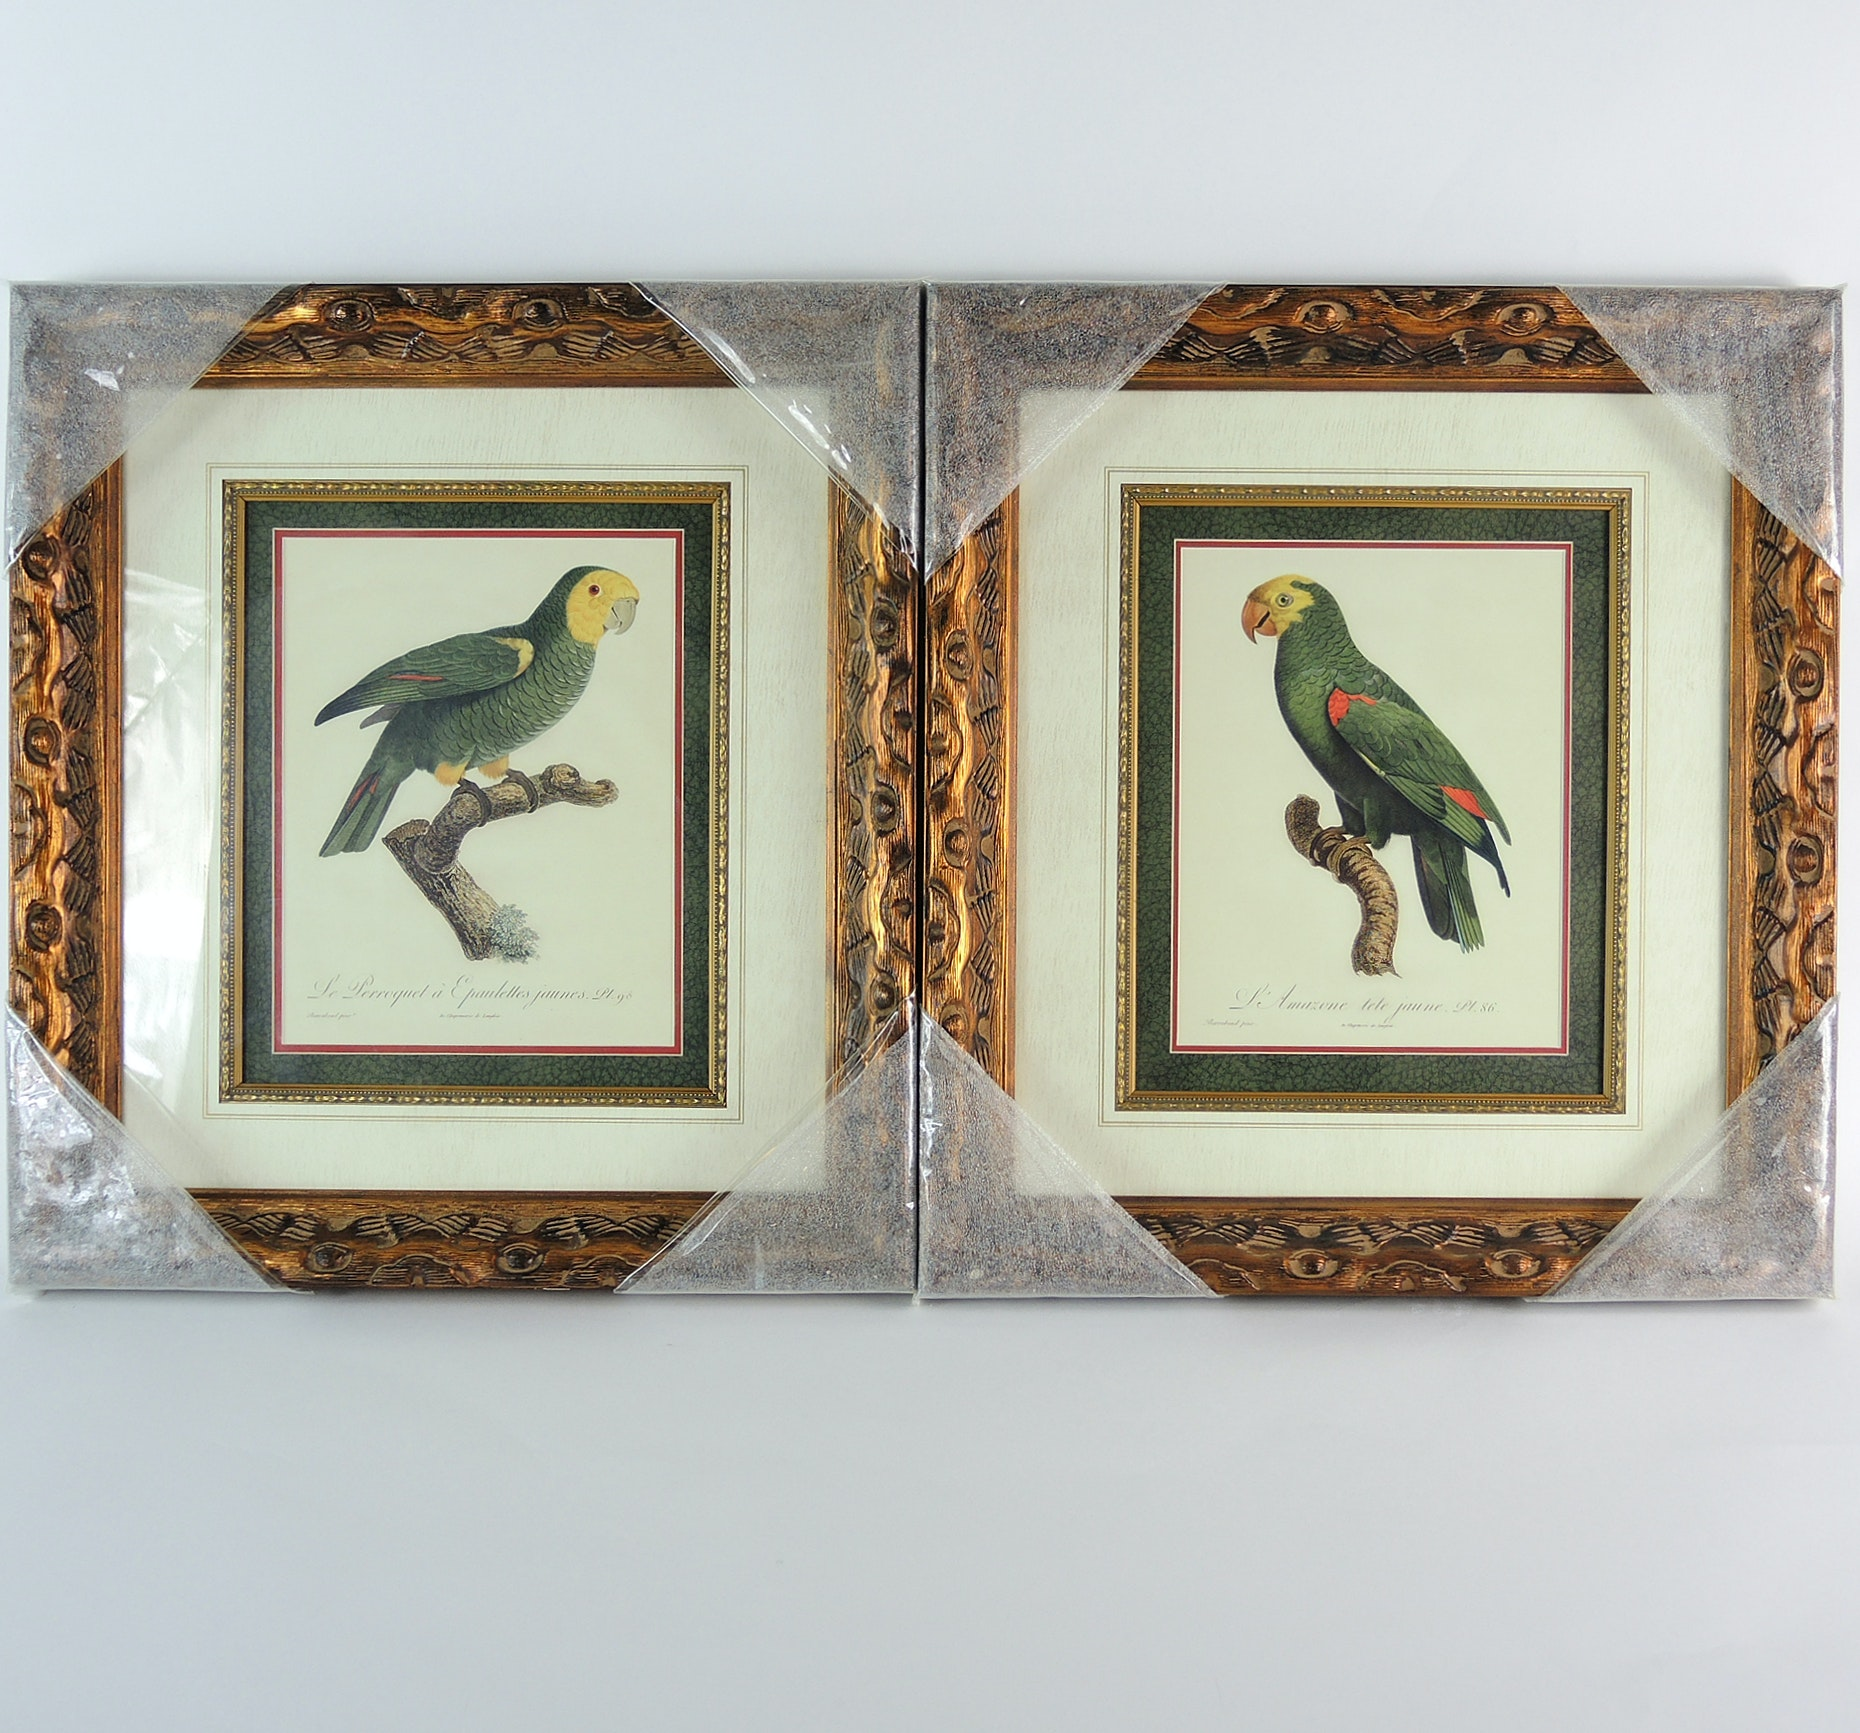 Framed Prints of Antique Scientific Parrot Illustrations